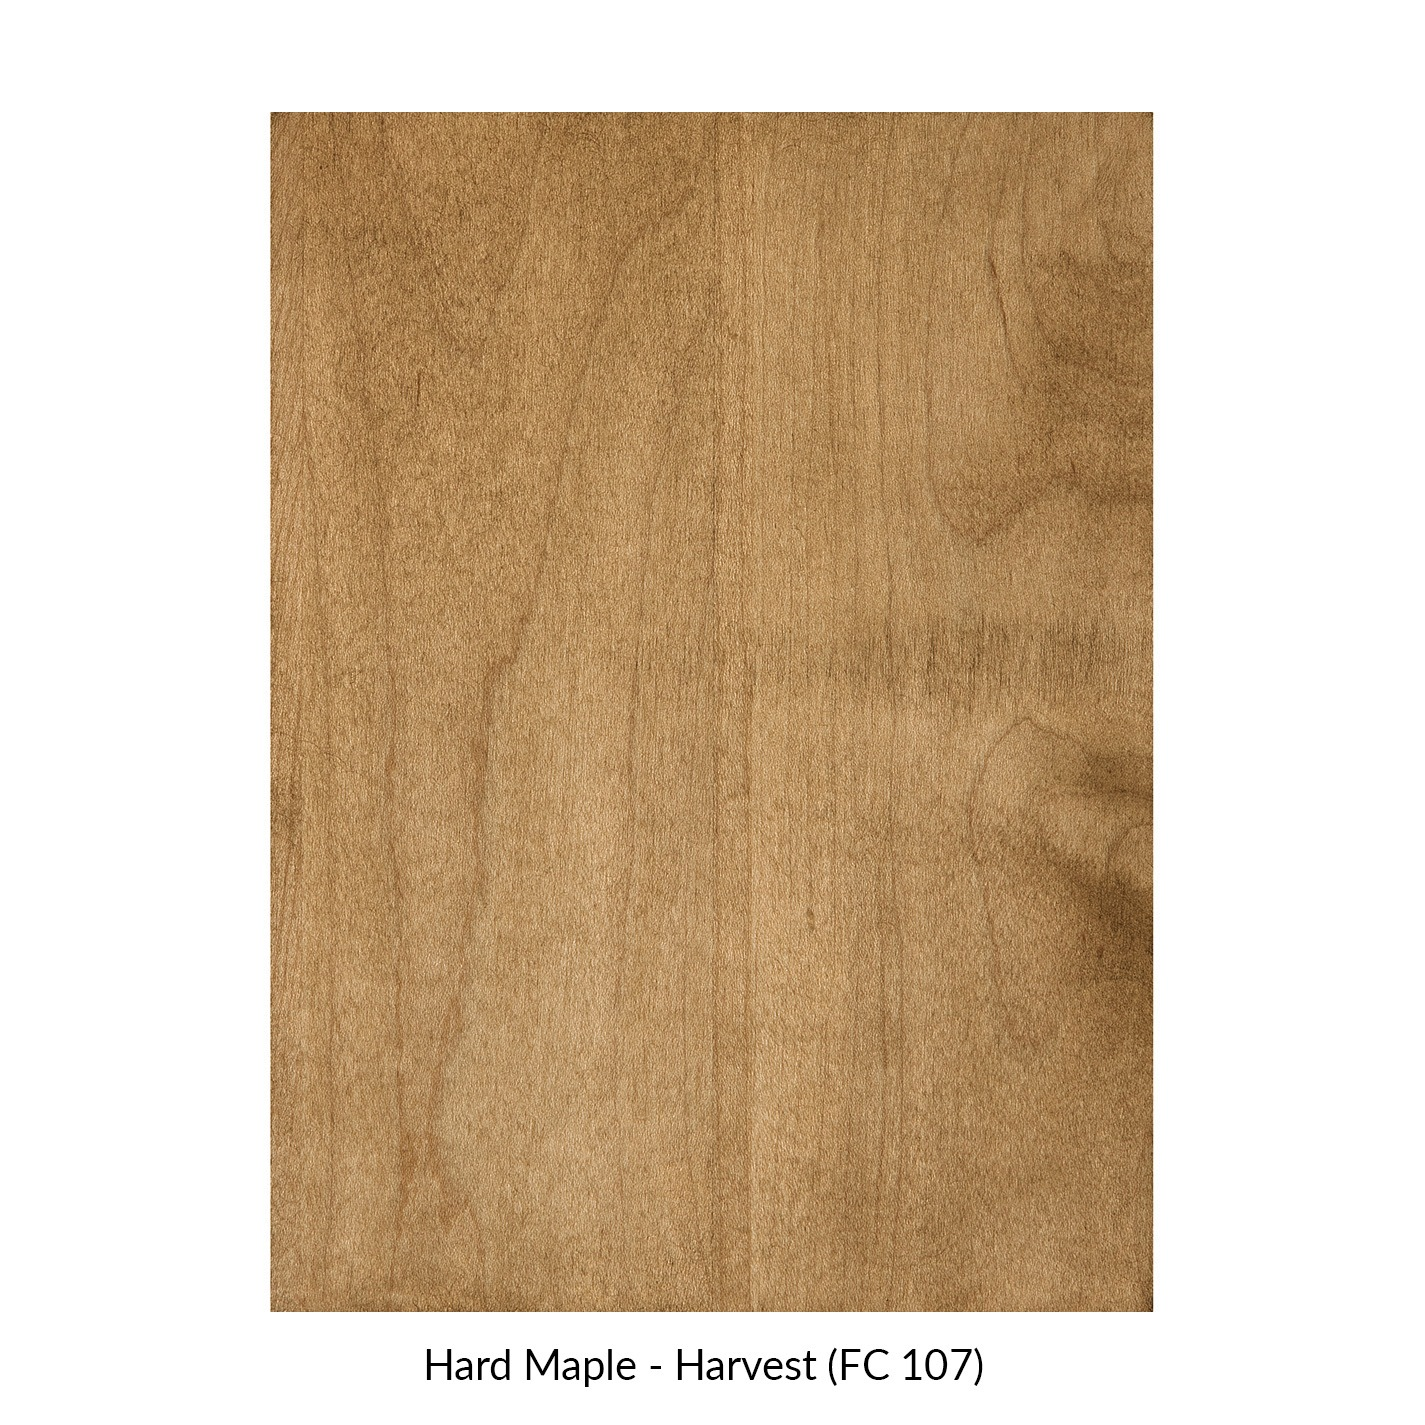 spectrum-hard-maple-harvest-fc-107.jpg